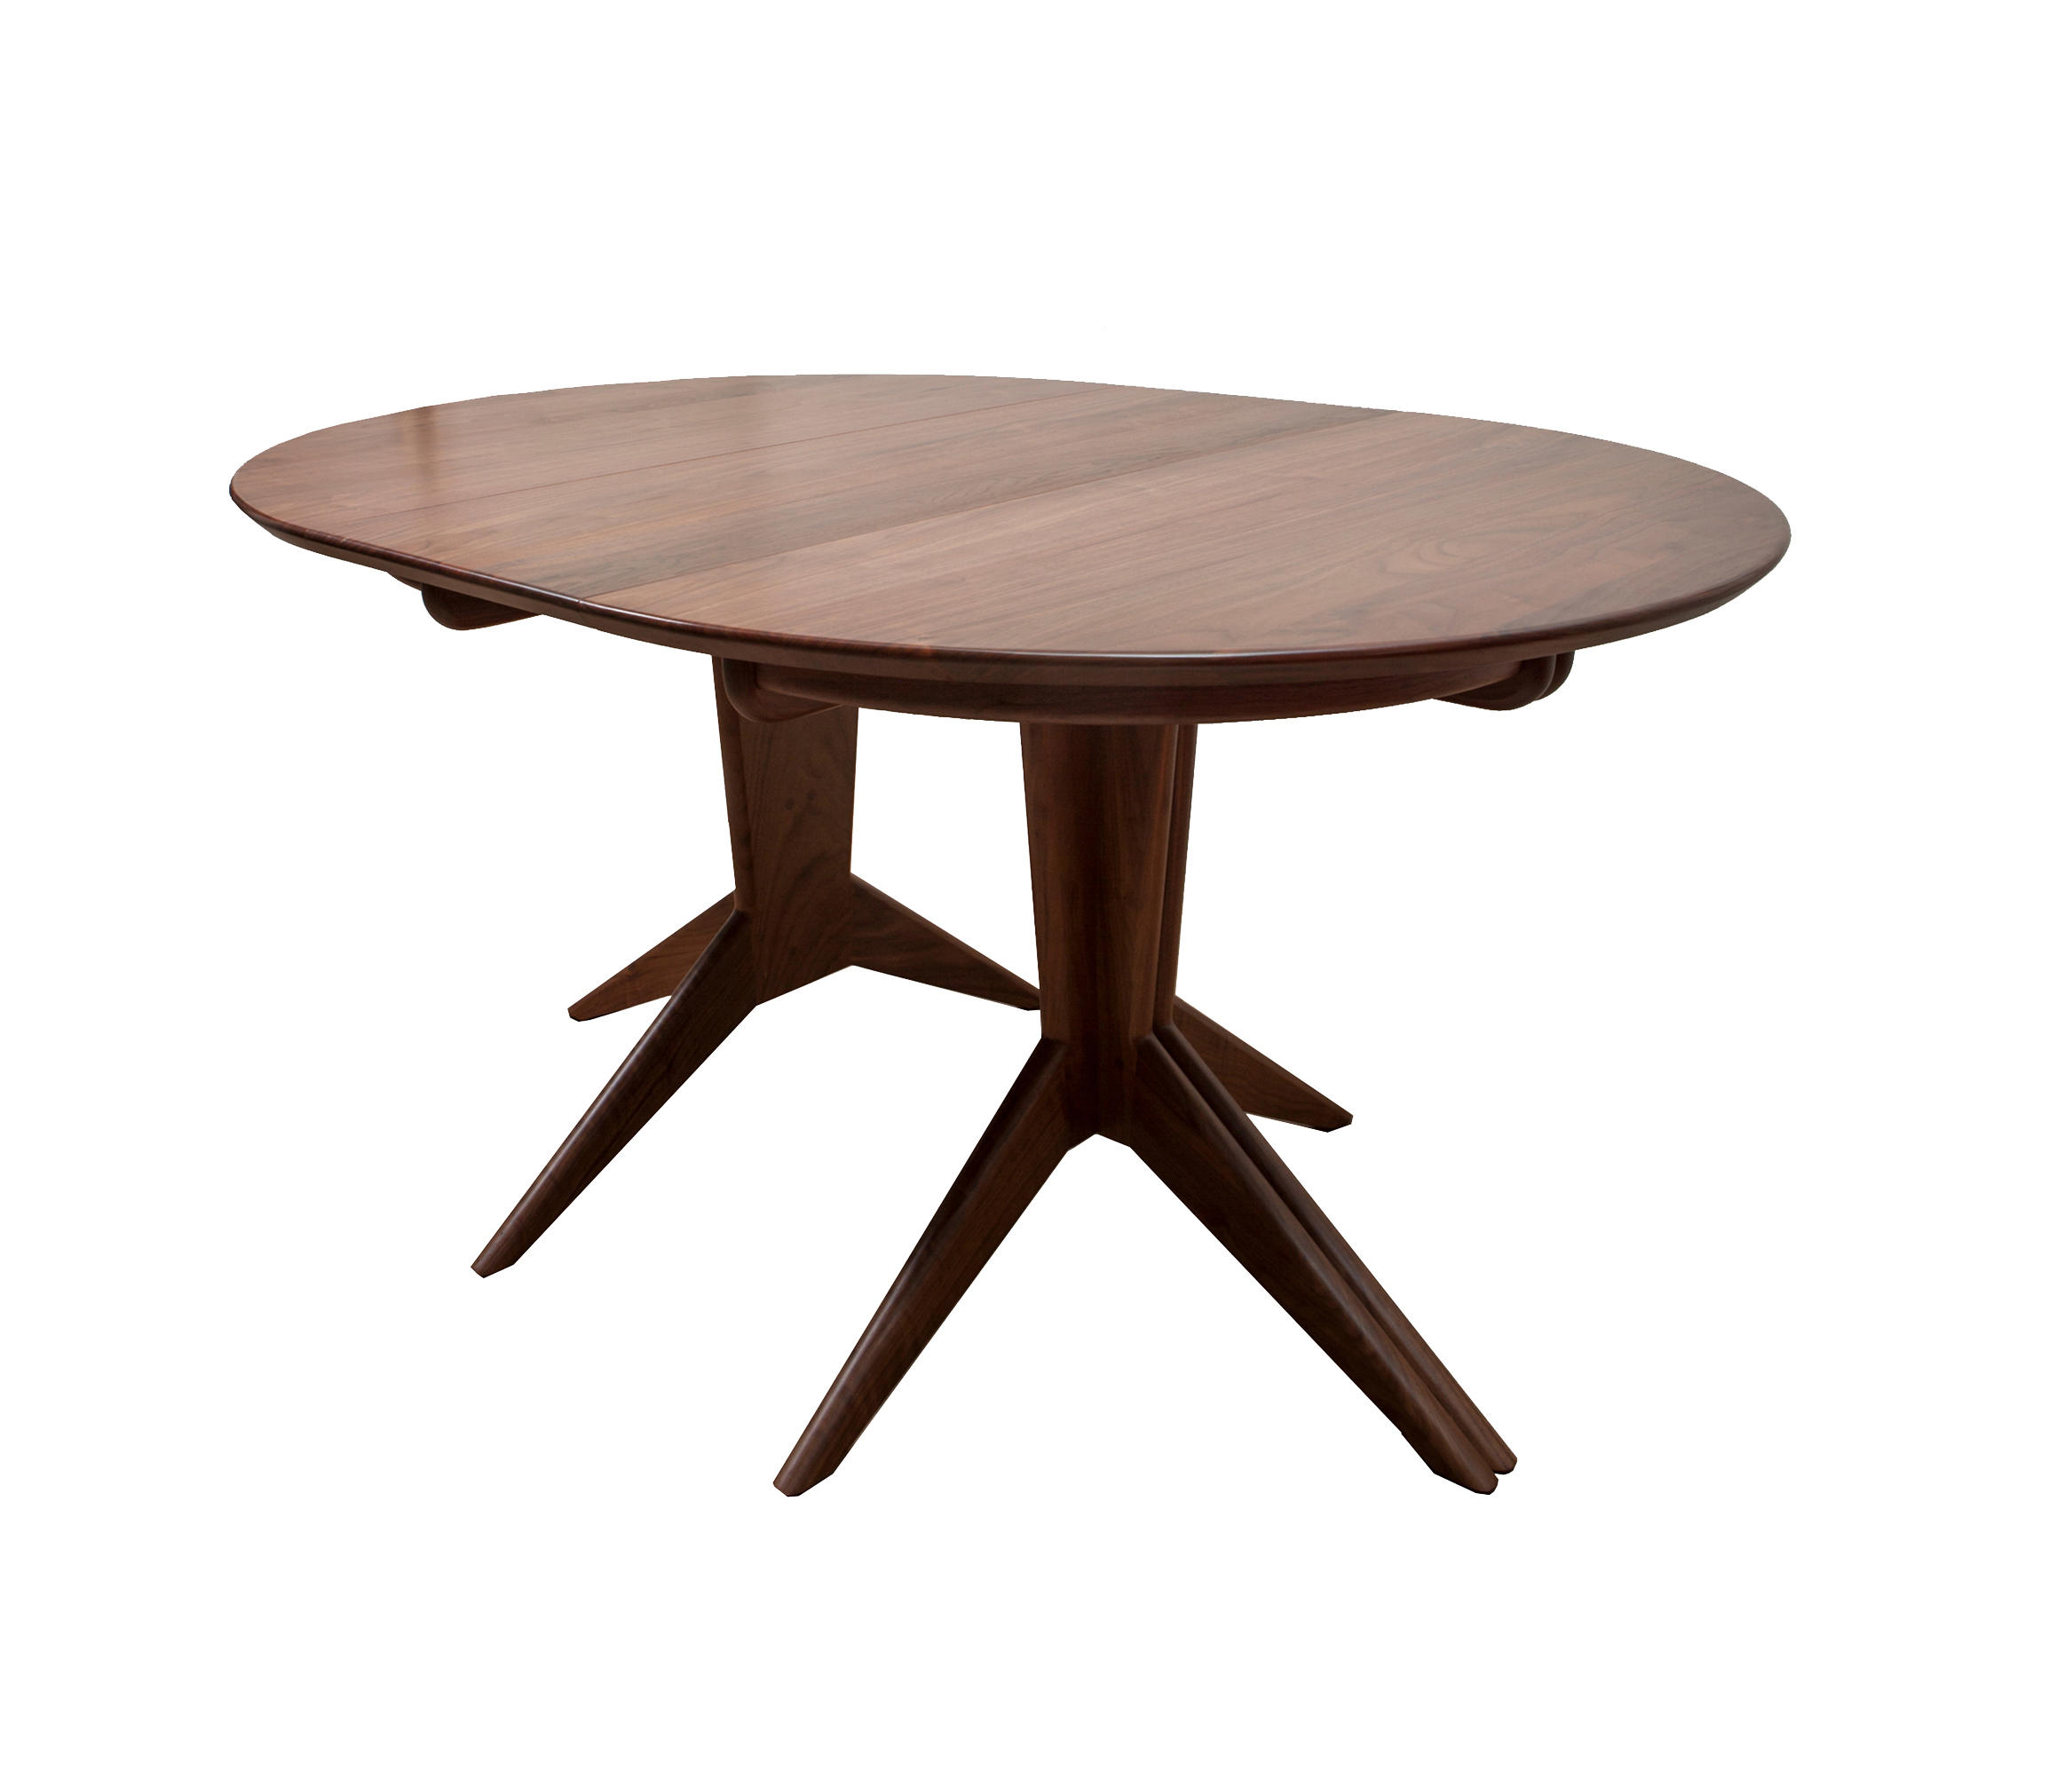 pedestal dining rectangular furniture product darkbaselighttop hooker options hayneedle table corsica cfm